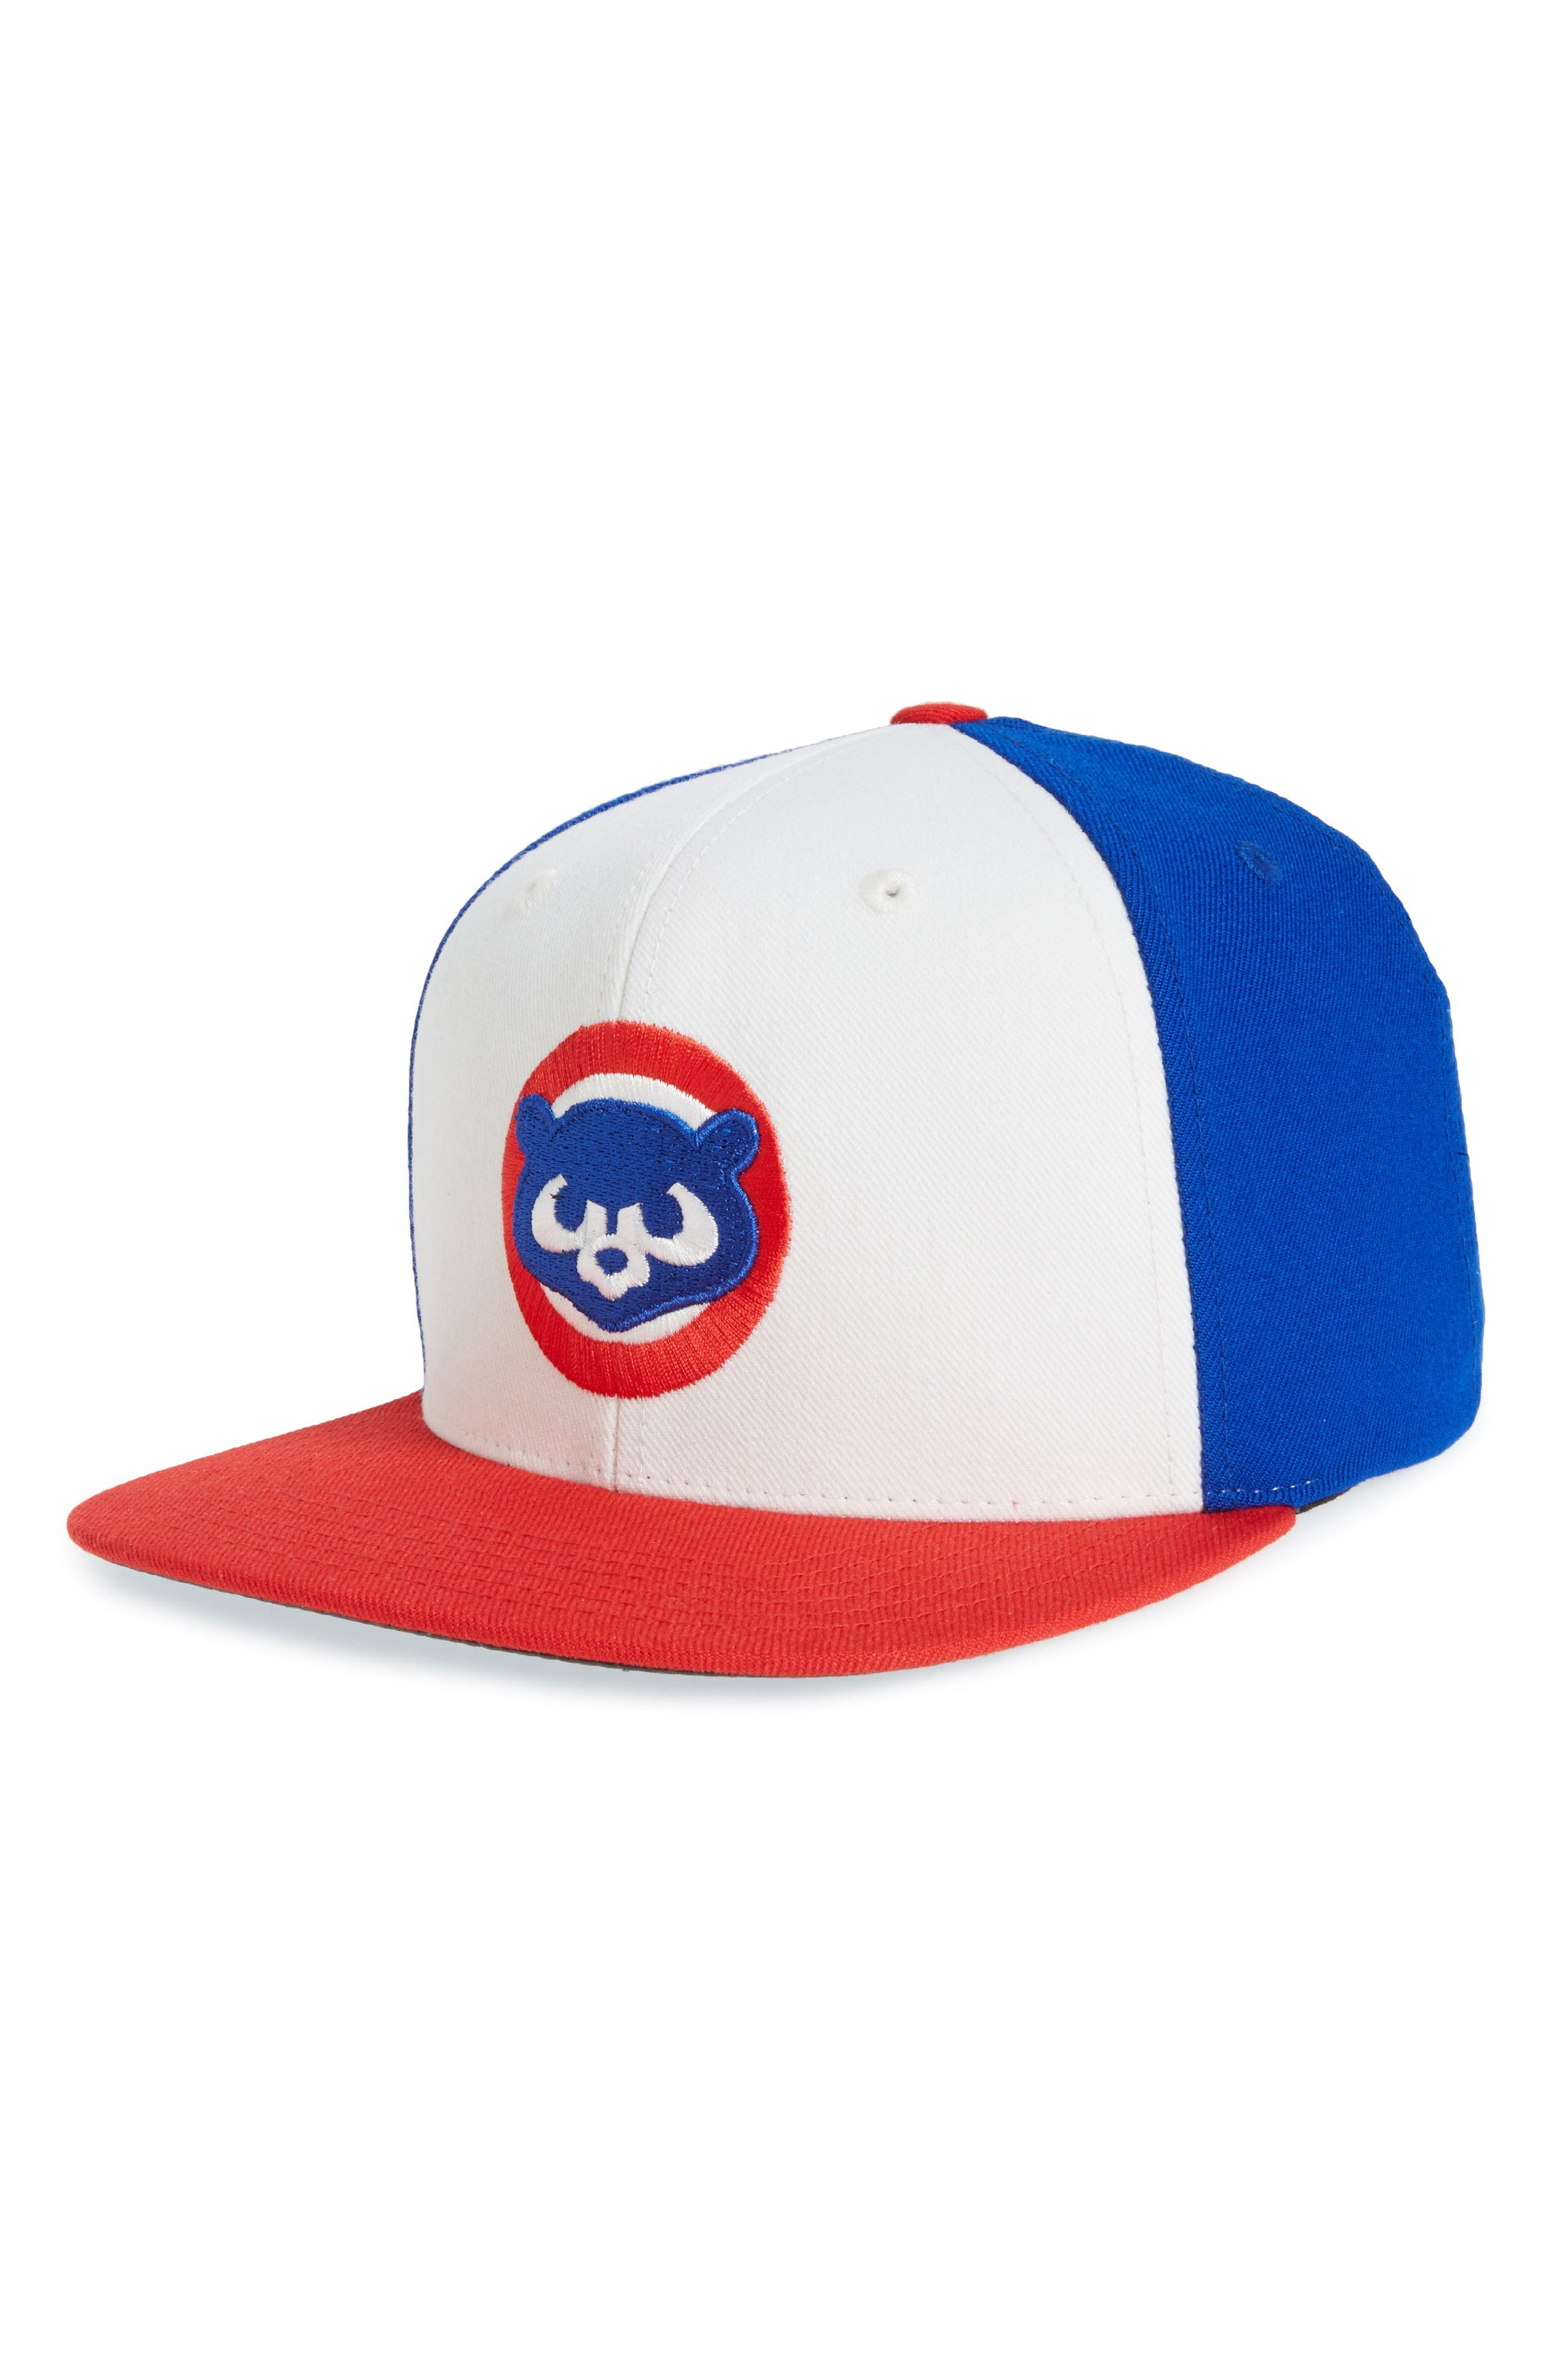 American Needle The Big Show MLB Snapback Baseball Cap